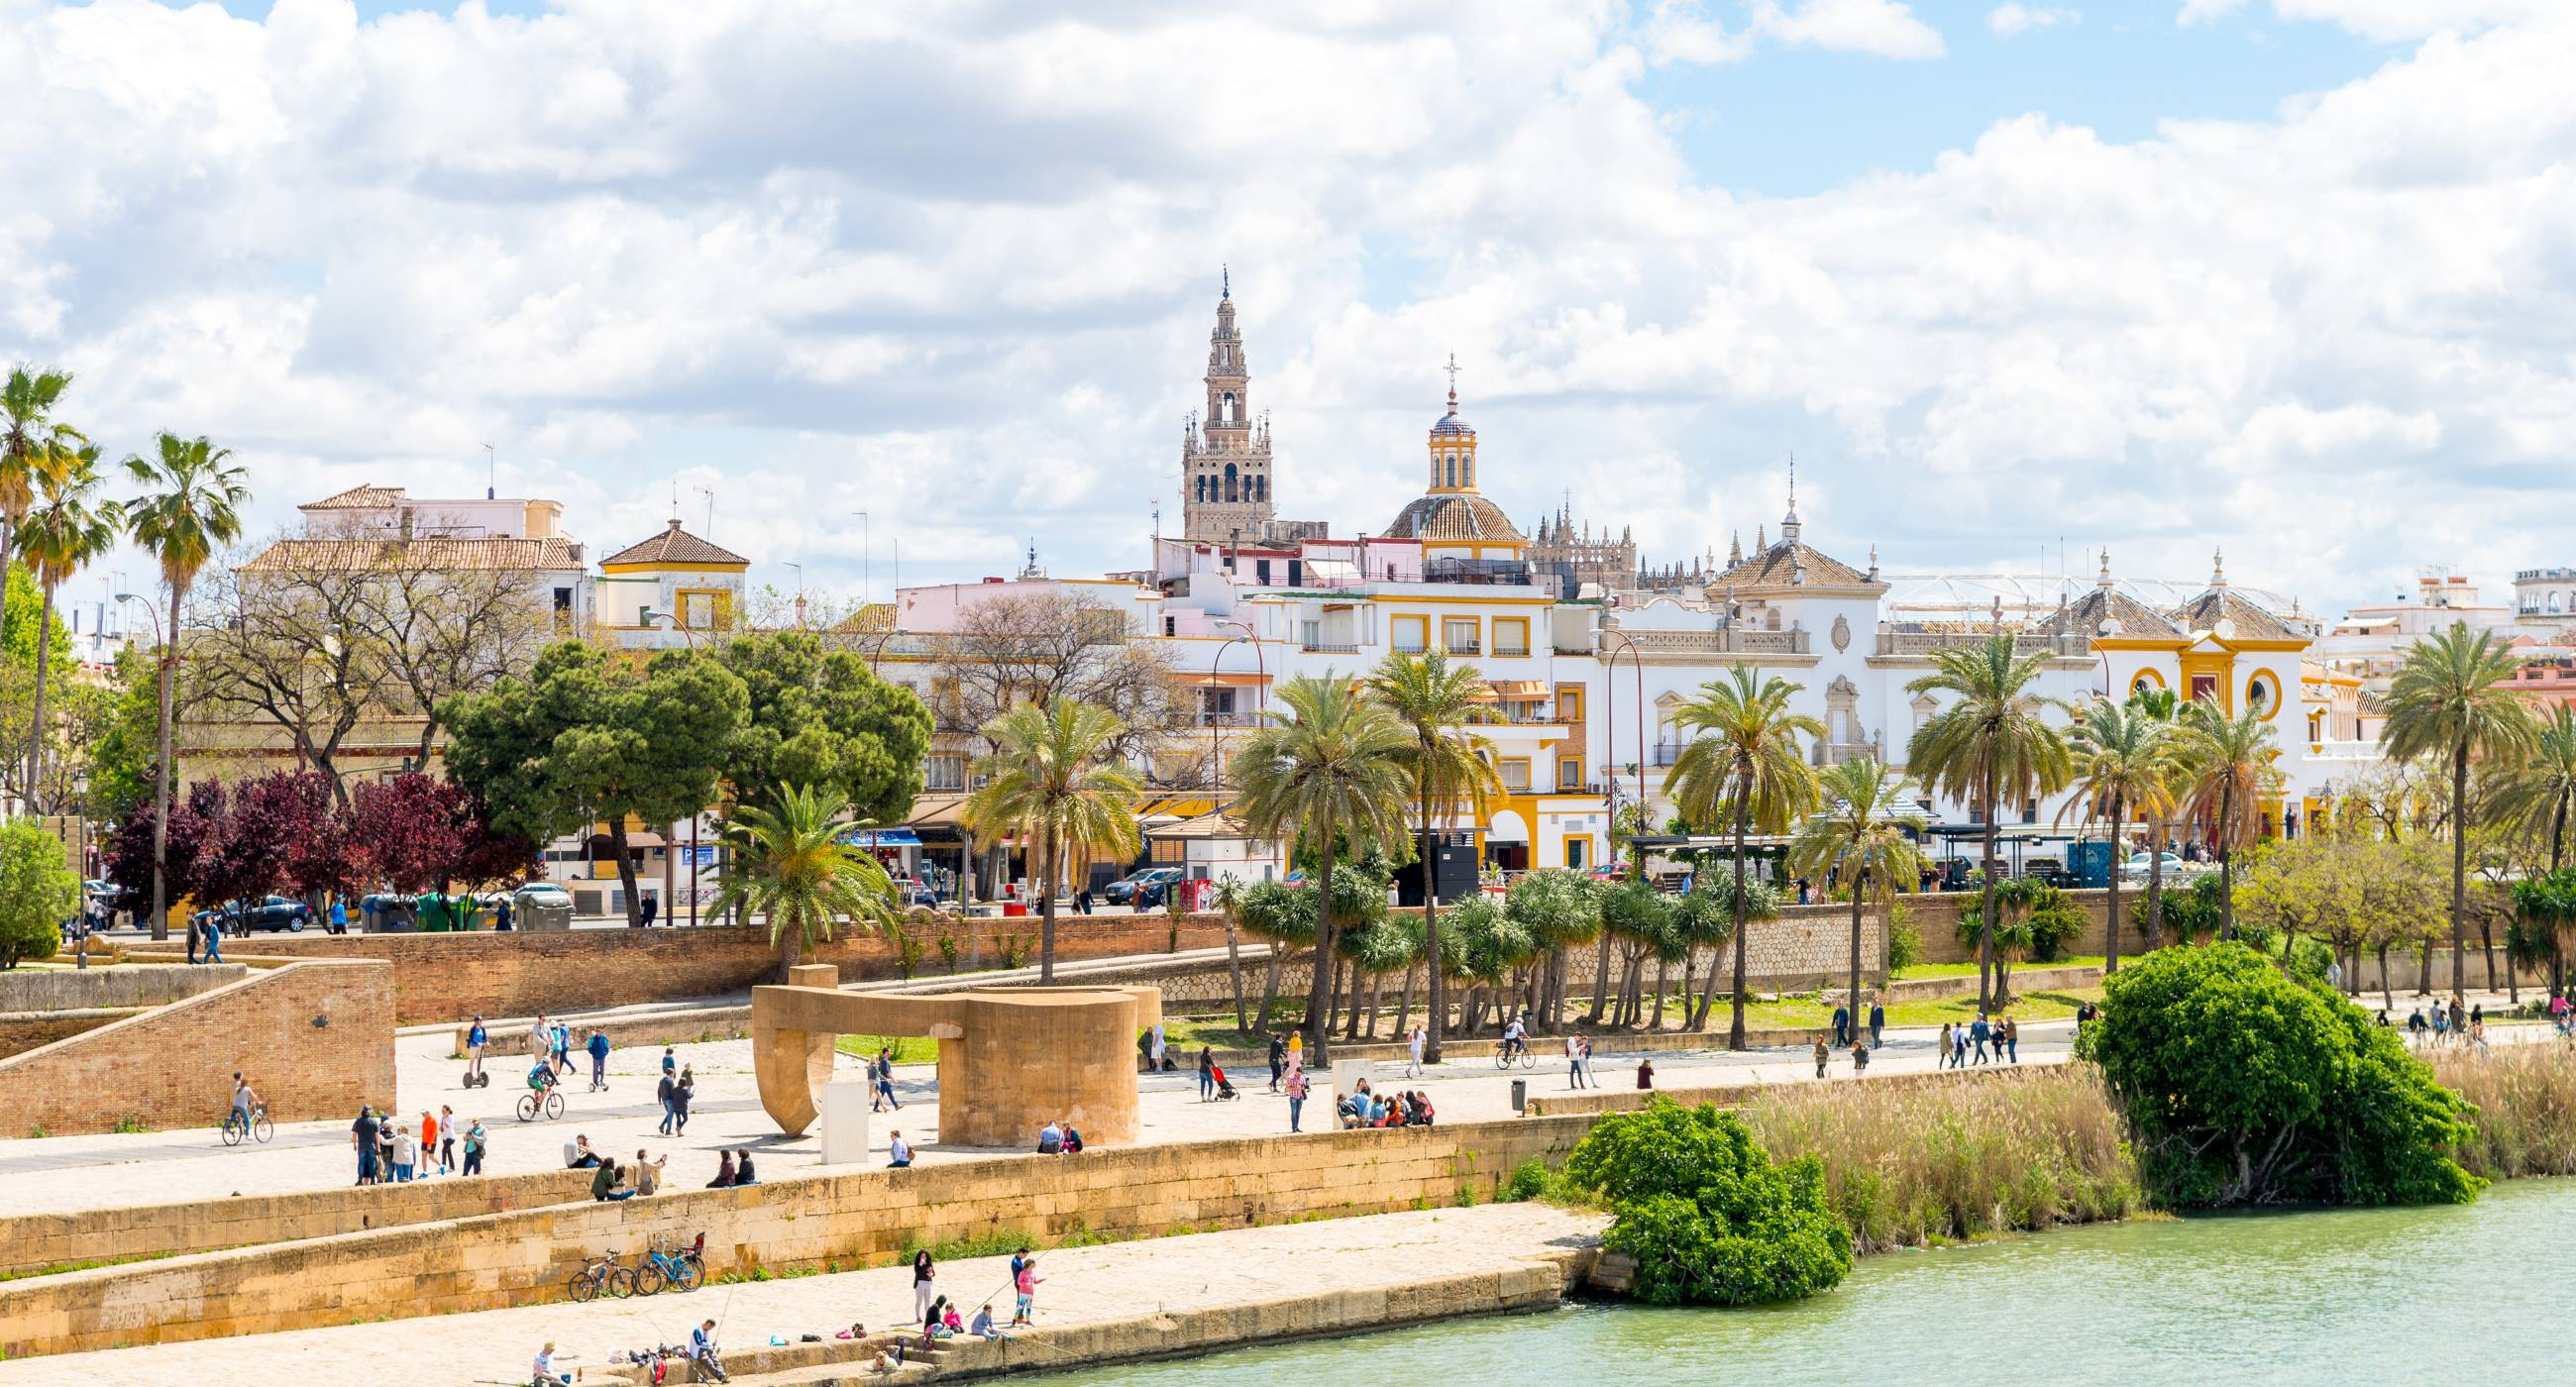 Alhambra - Things to do in Seville Spain